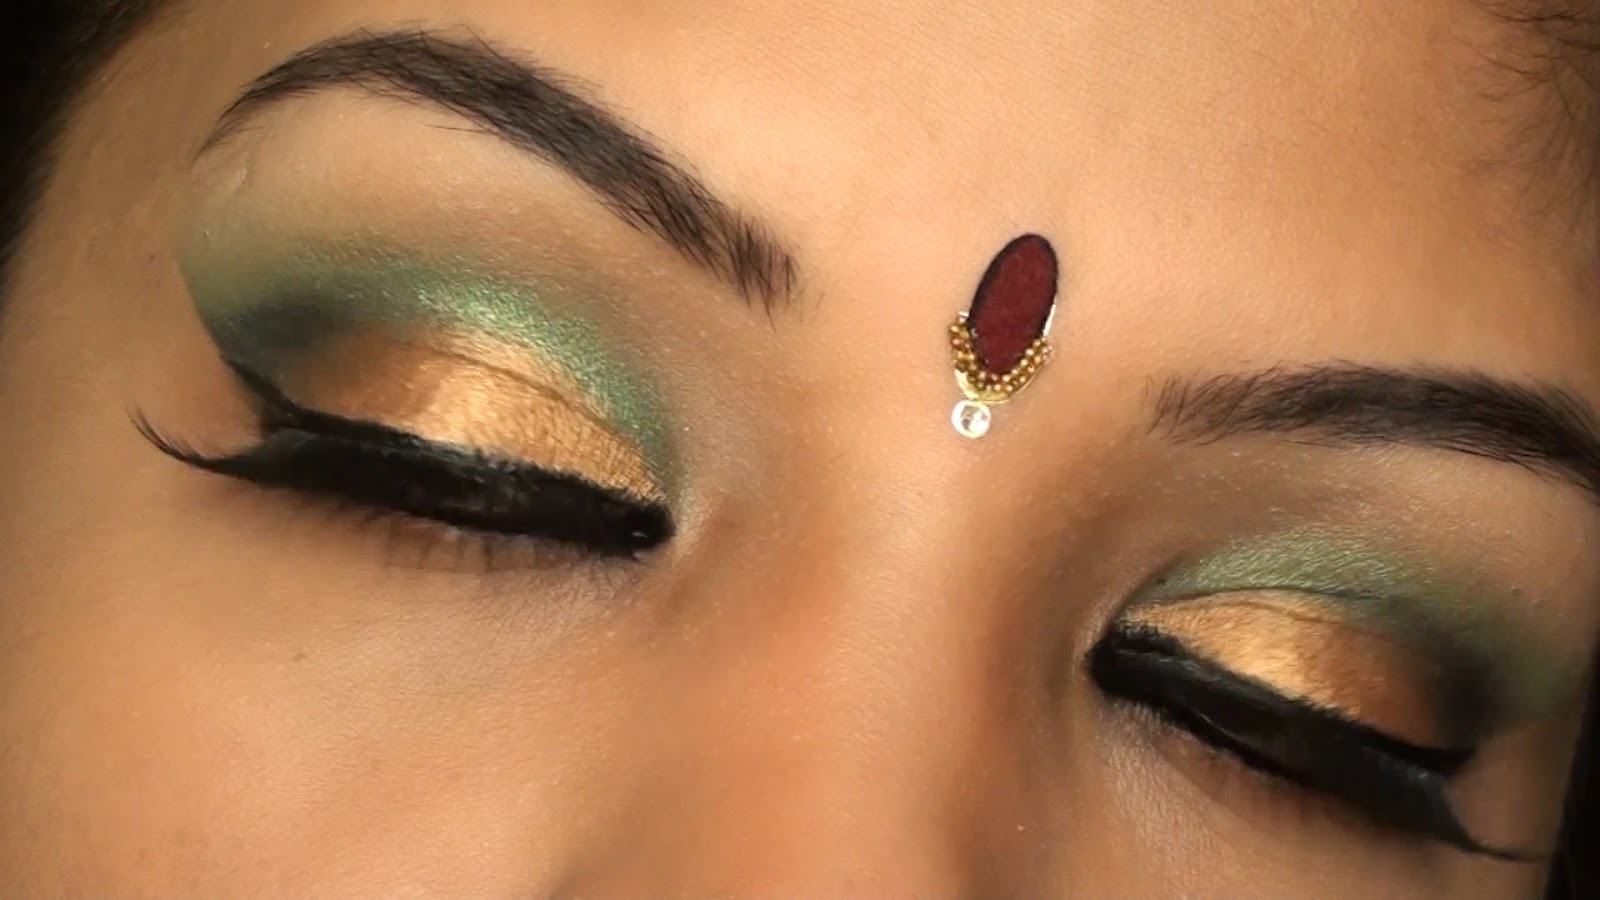 Bollywood Inspired Indian Bridal Wedding Make Up Tutorial Gold And Green Eye Makeup